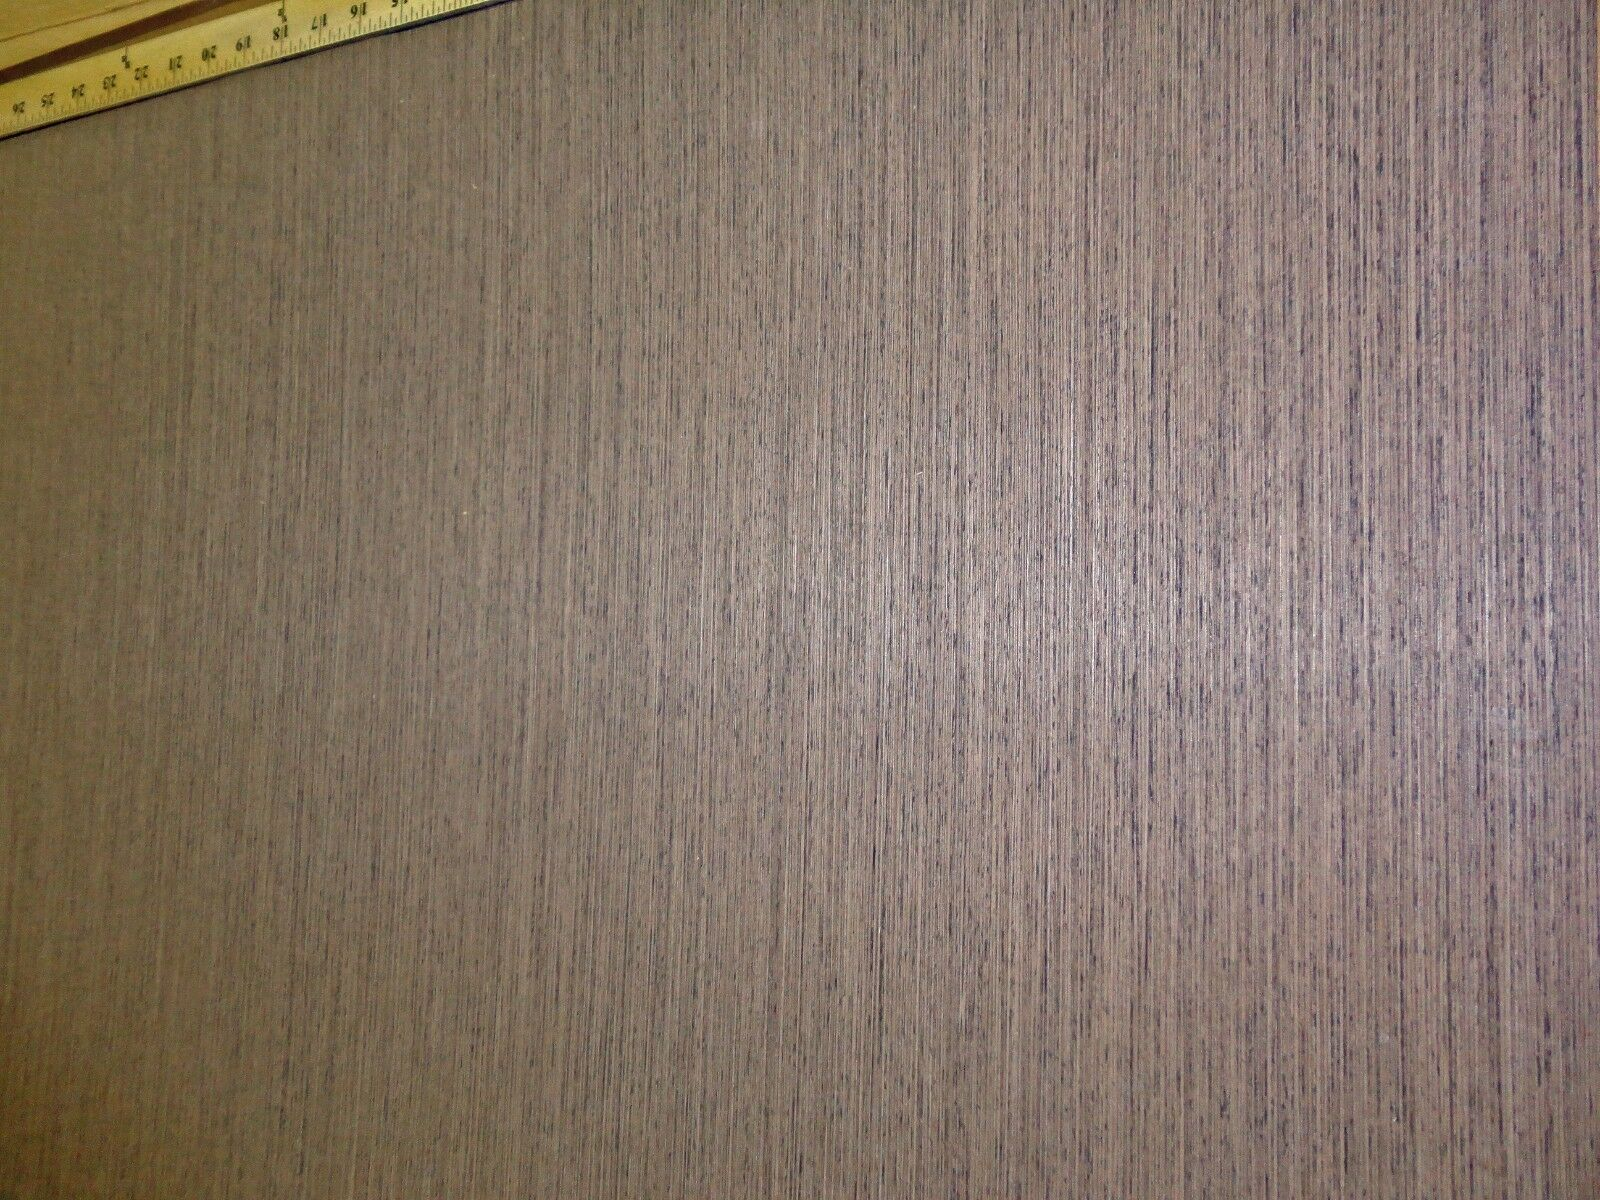 """Wenge African composite wood veneer 24/"""" x 24/"""" on paper backer 1//40th/"""" thick #947"""